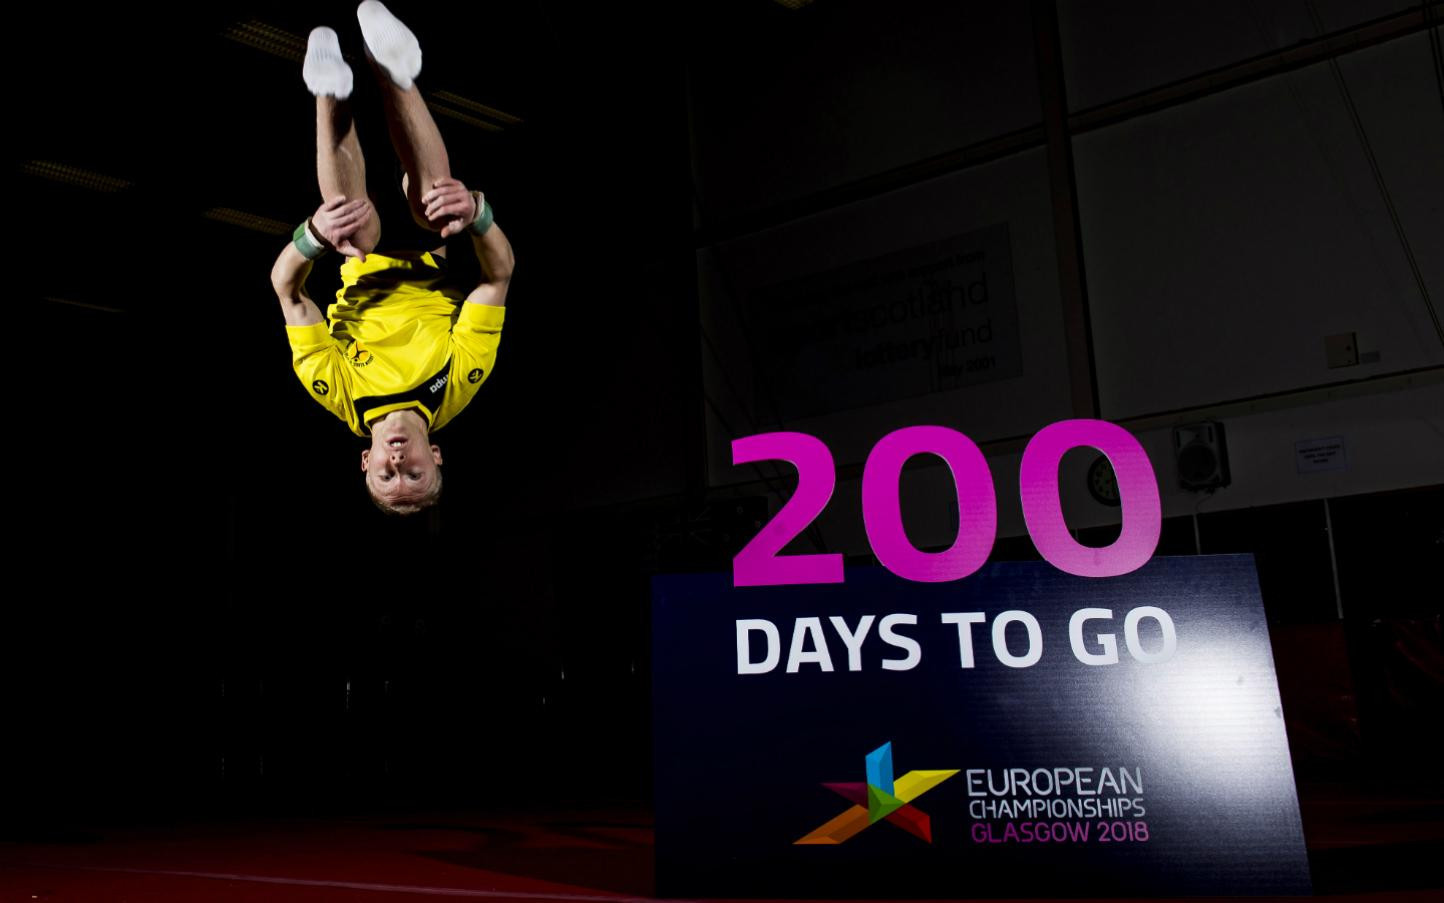 The Glasgow 2018 European Championships are due to take place from August 2 to 12 ©Glasgow 2018